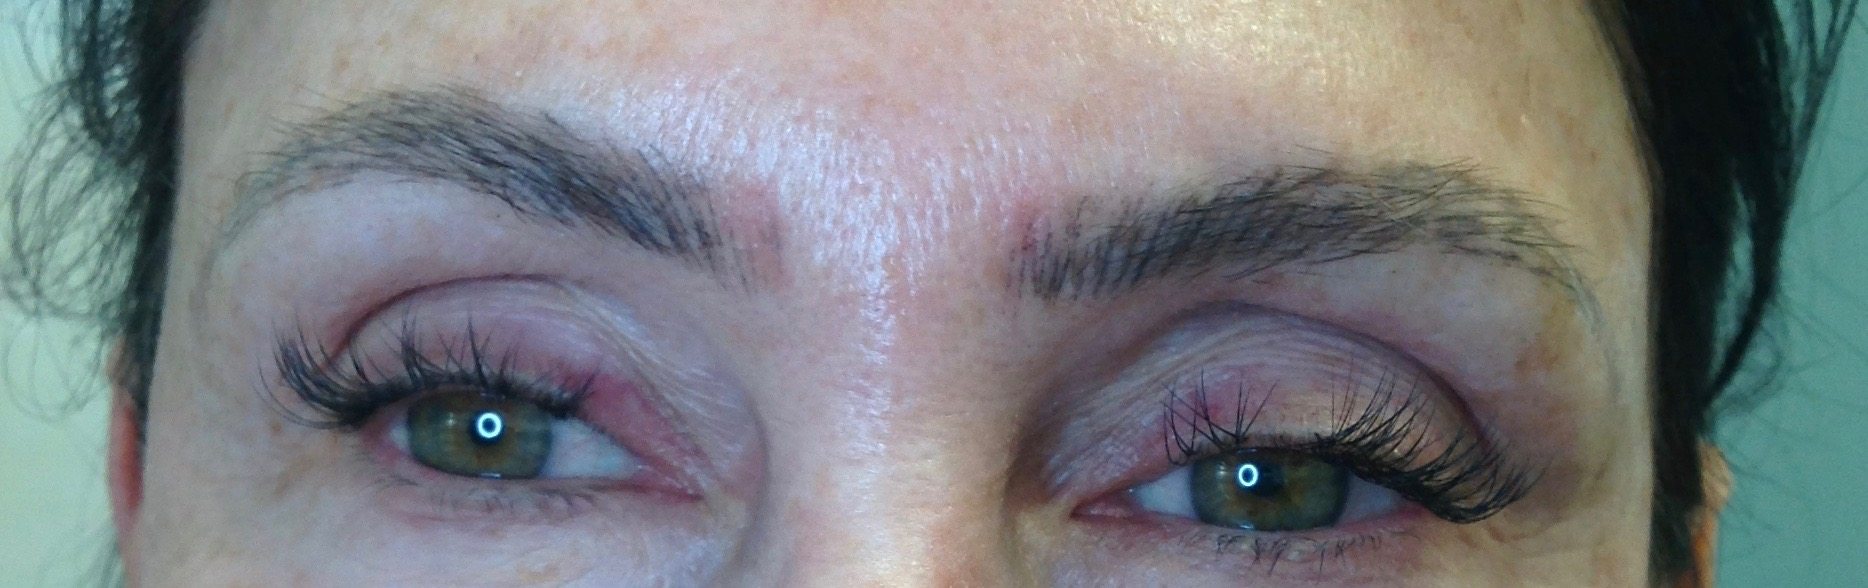 """BEFORE:  Microblading done elsewhere left this client's eyebrows too close together in the center, and overly dark and bold for the client's preference. The client attempted to """"scrub"""" the pigment out of the center during healing to prevent it from staying in the skin, thus the red areas. This could have left scarring, but fortunately her skin recovered with no adverse effects."""